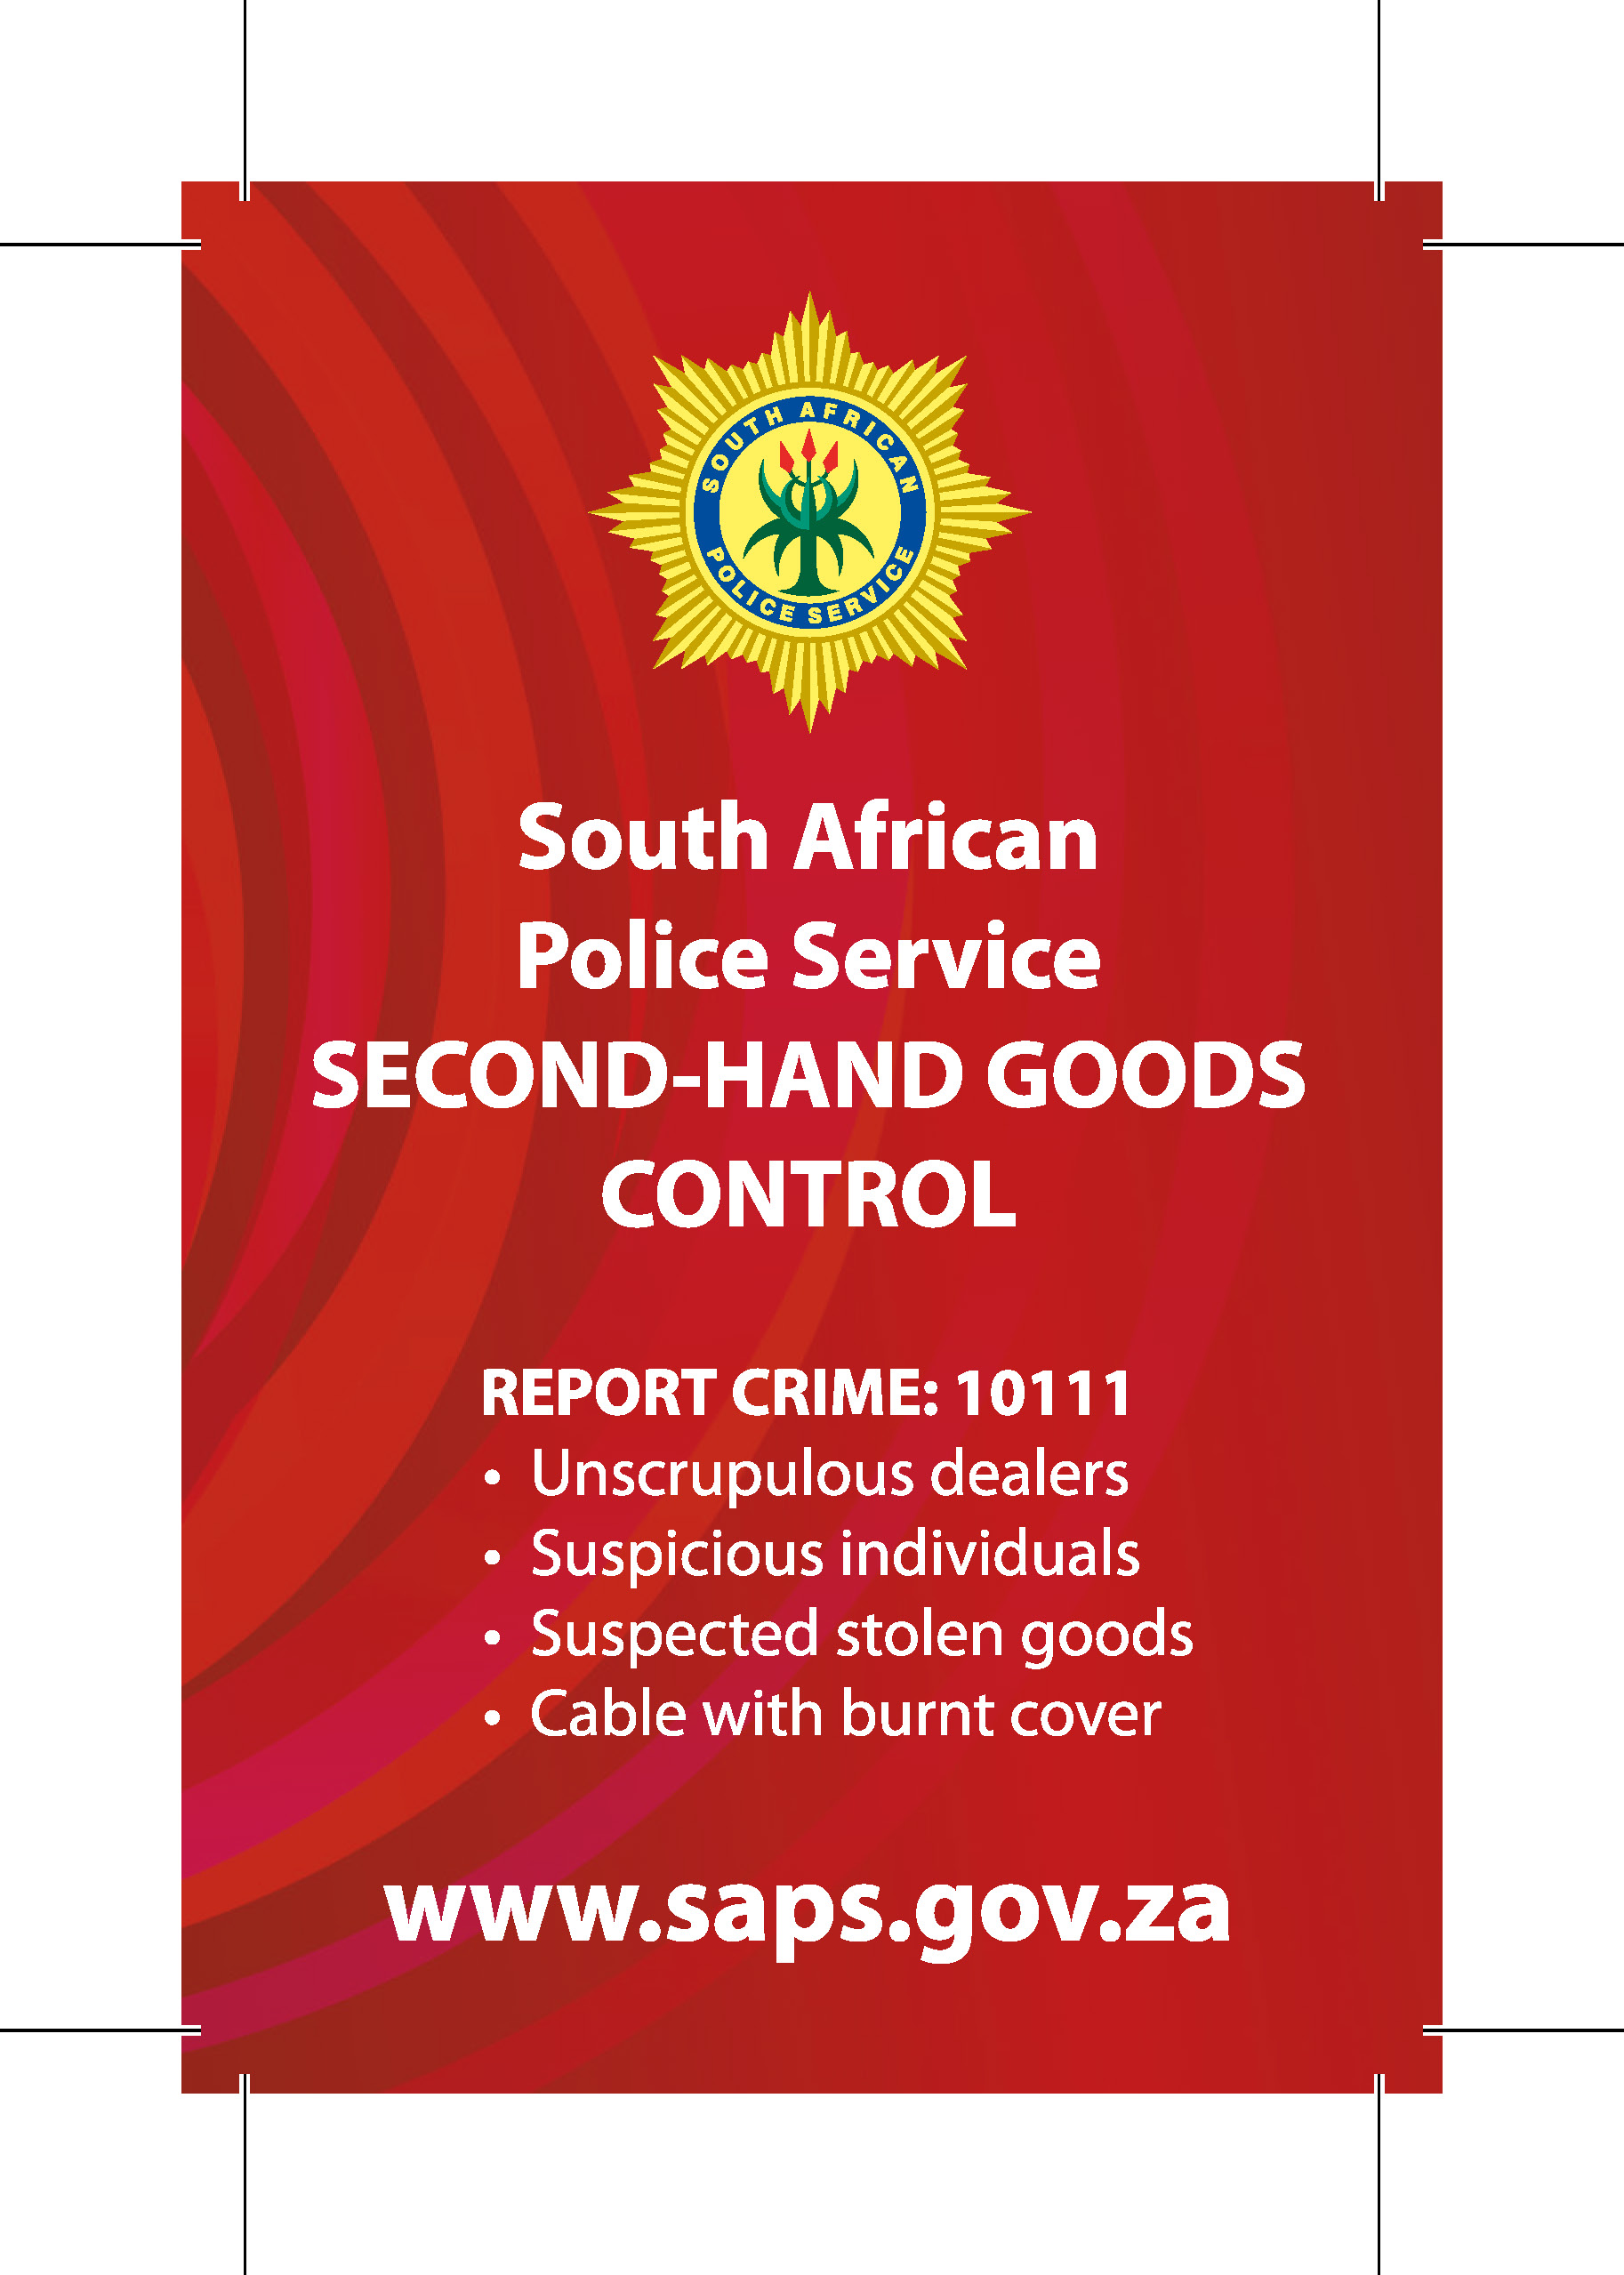 About Us | SAPS (South African Police Service)